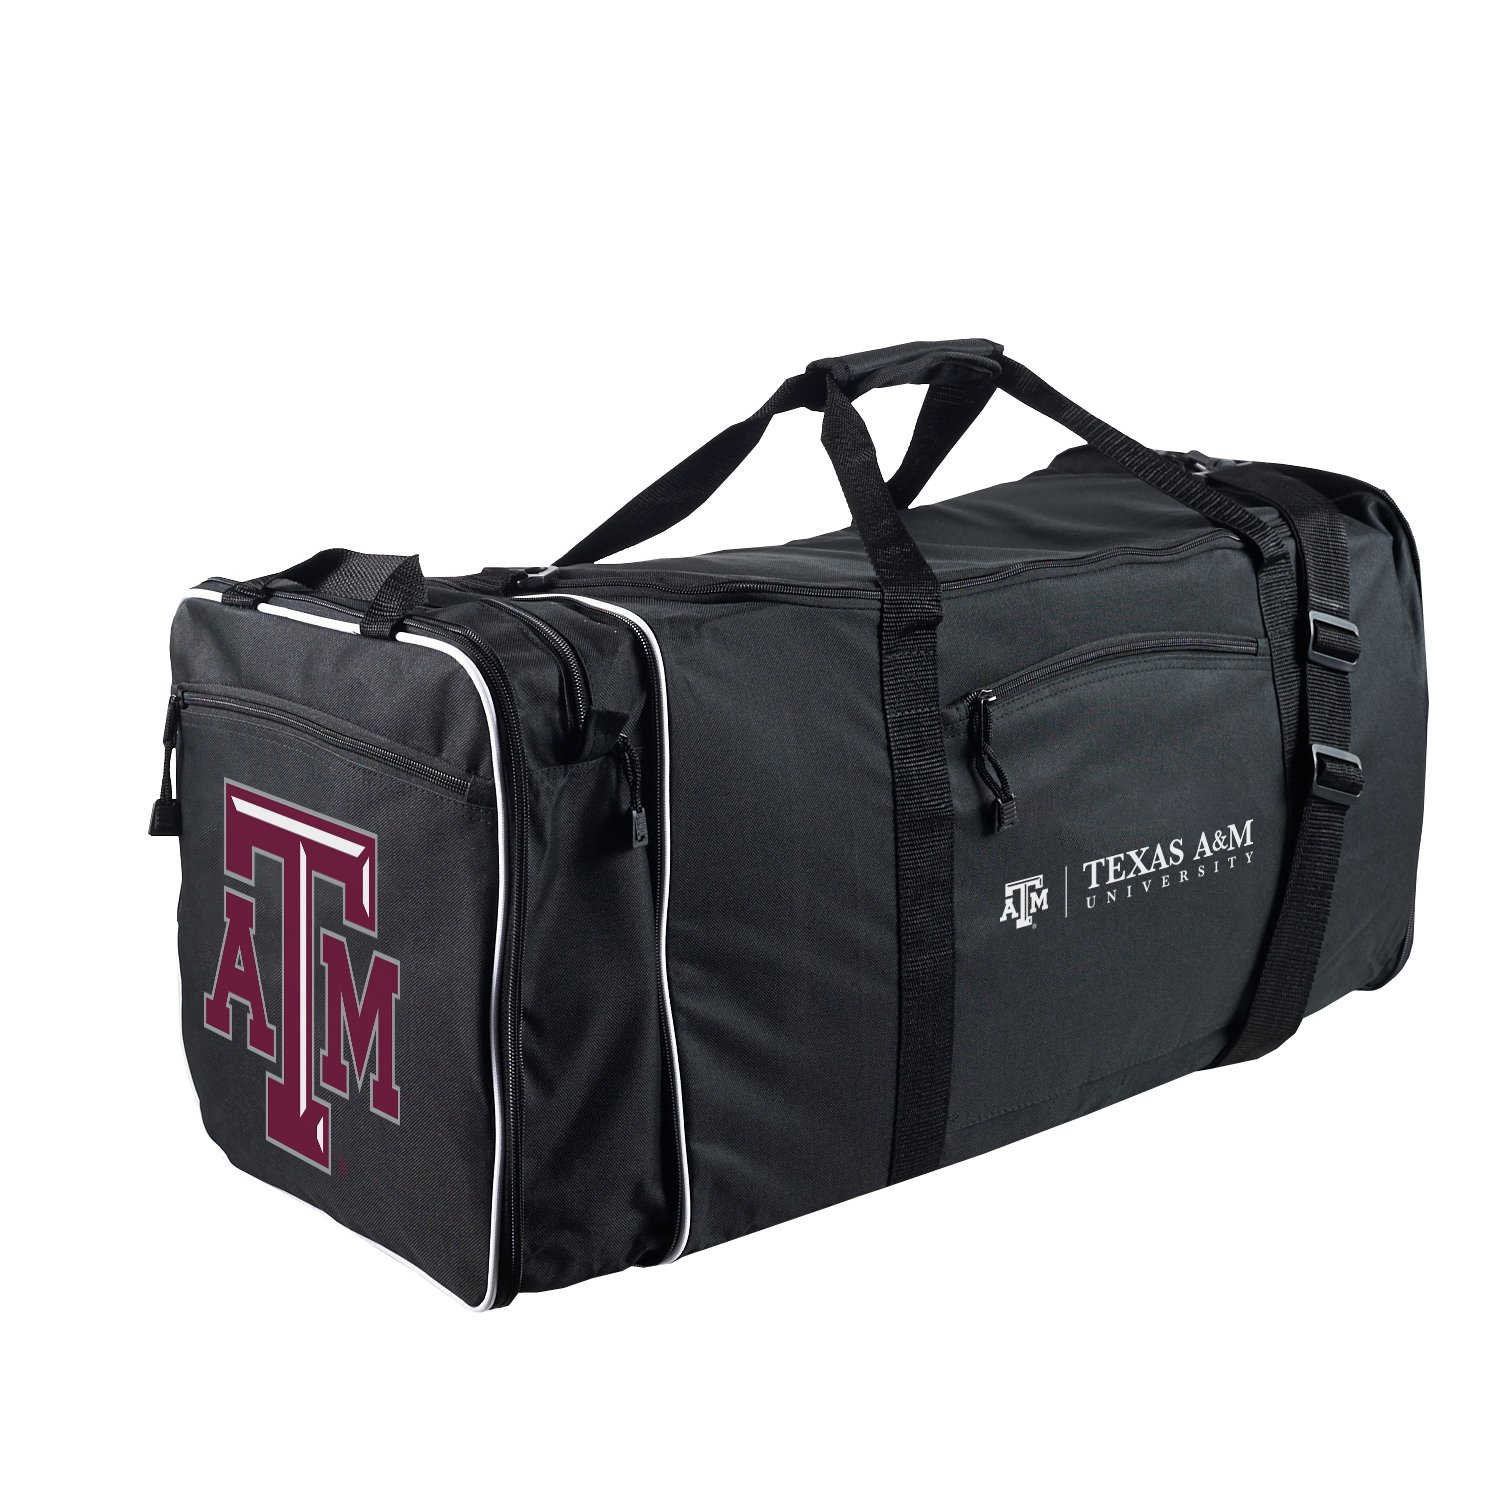 Officially Licensed NCAA Texas A&M Aggies Steal Duffel Bag by The Northwest Company (Image #1)